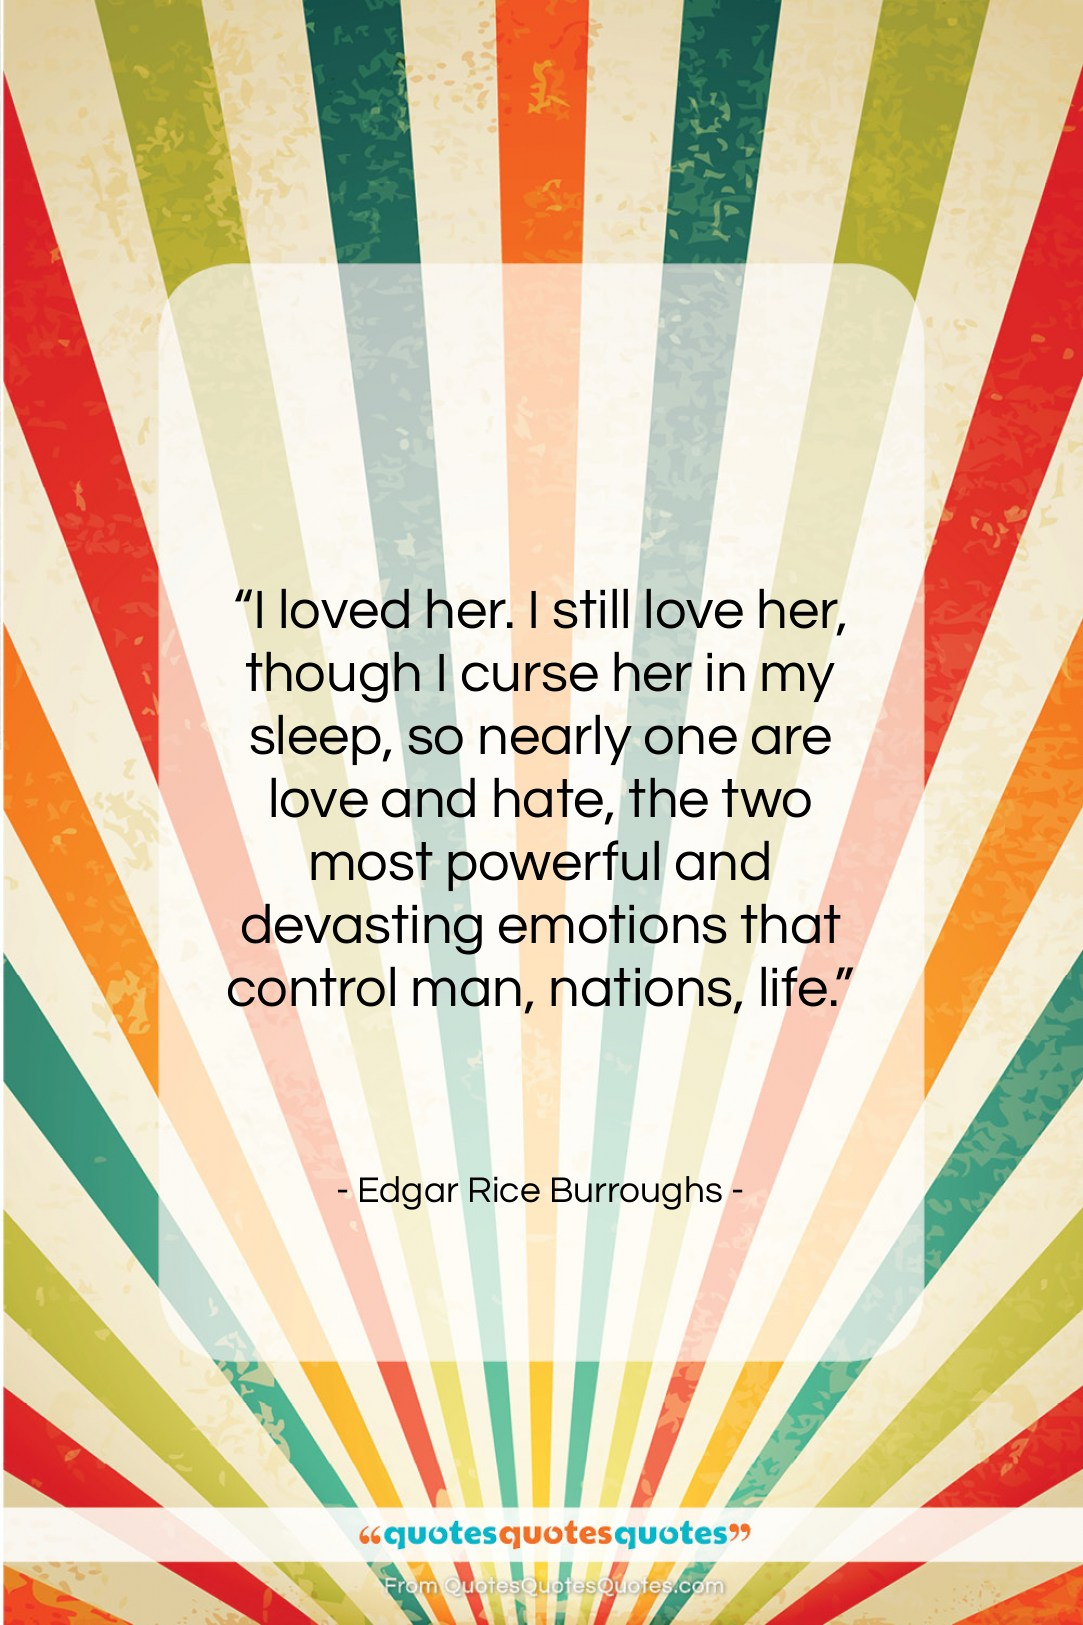 """Edgar Rice Burroughs quote: """"I loved her. I still love her,…""""- at QuotesQuotesQuotes.com"""